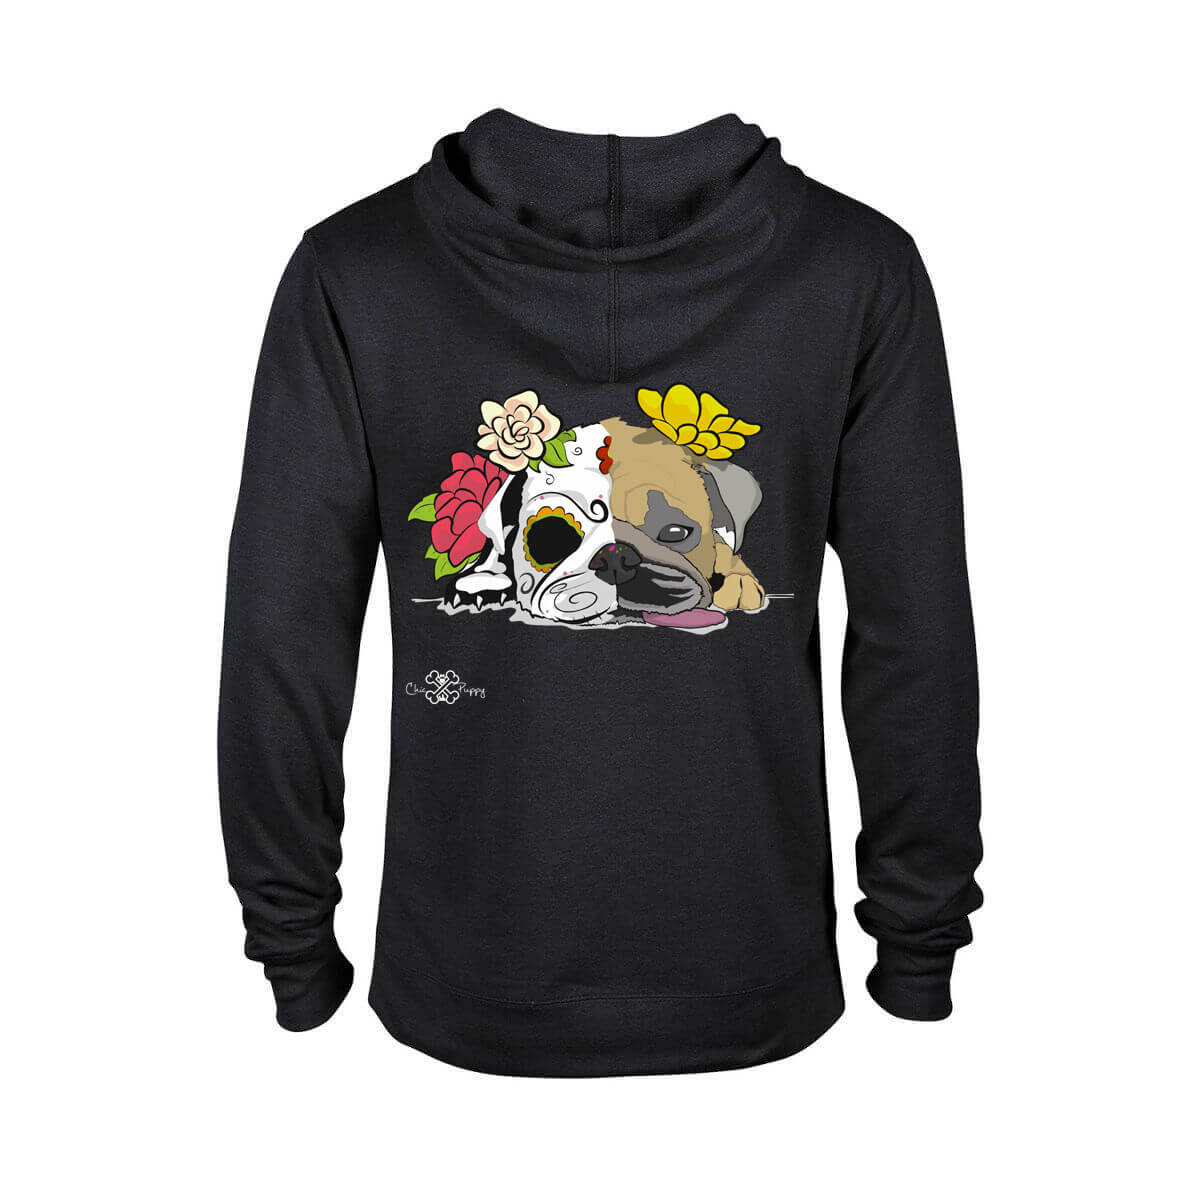 Matching Dog and Owner - Dia De Los Muertos Pug - Women Hoodies - Women